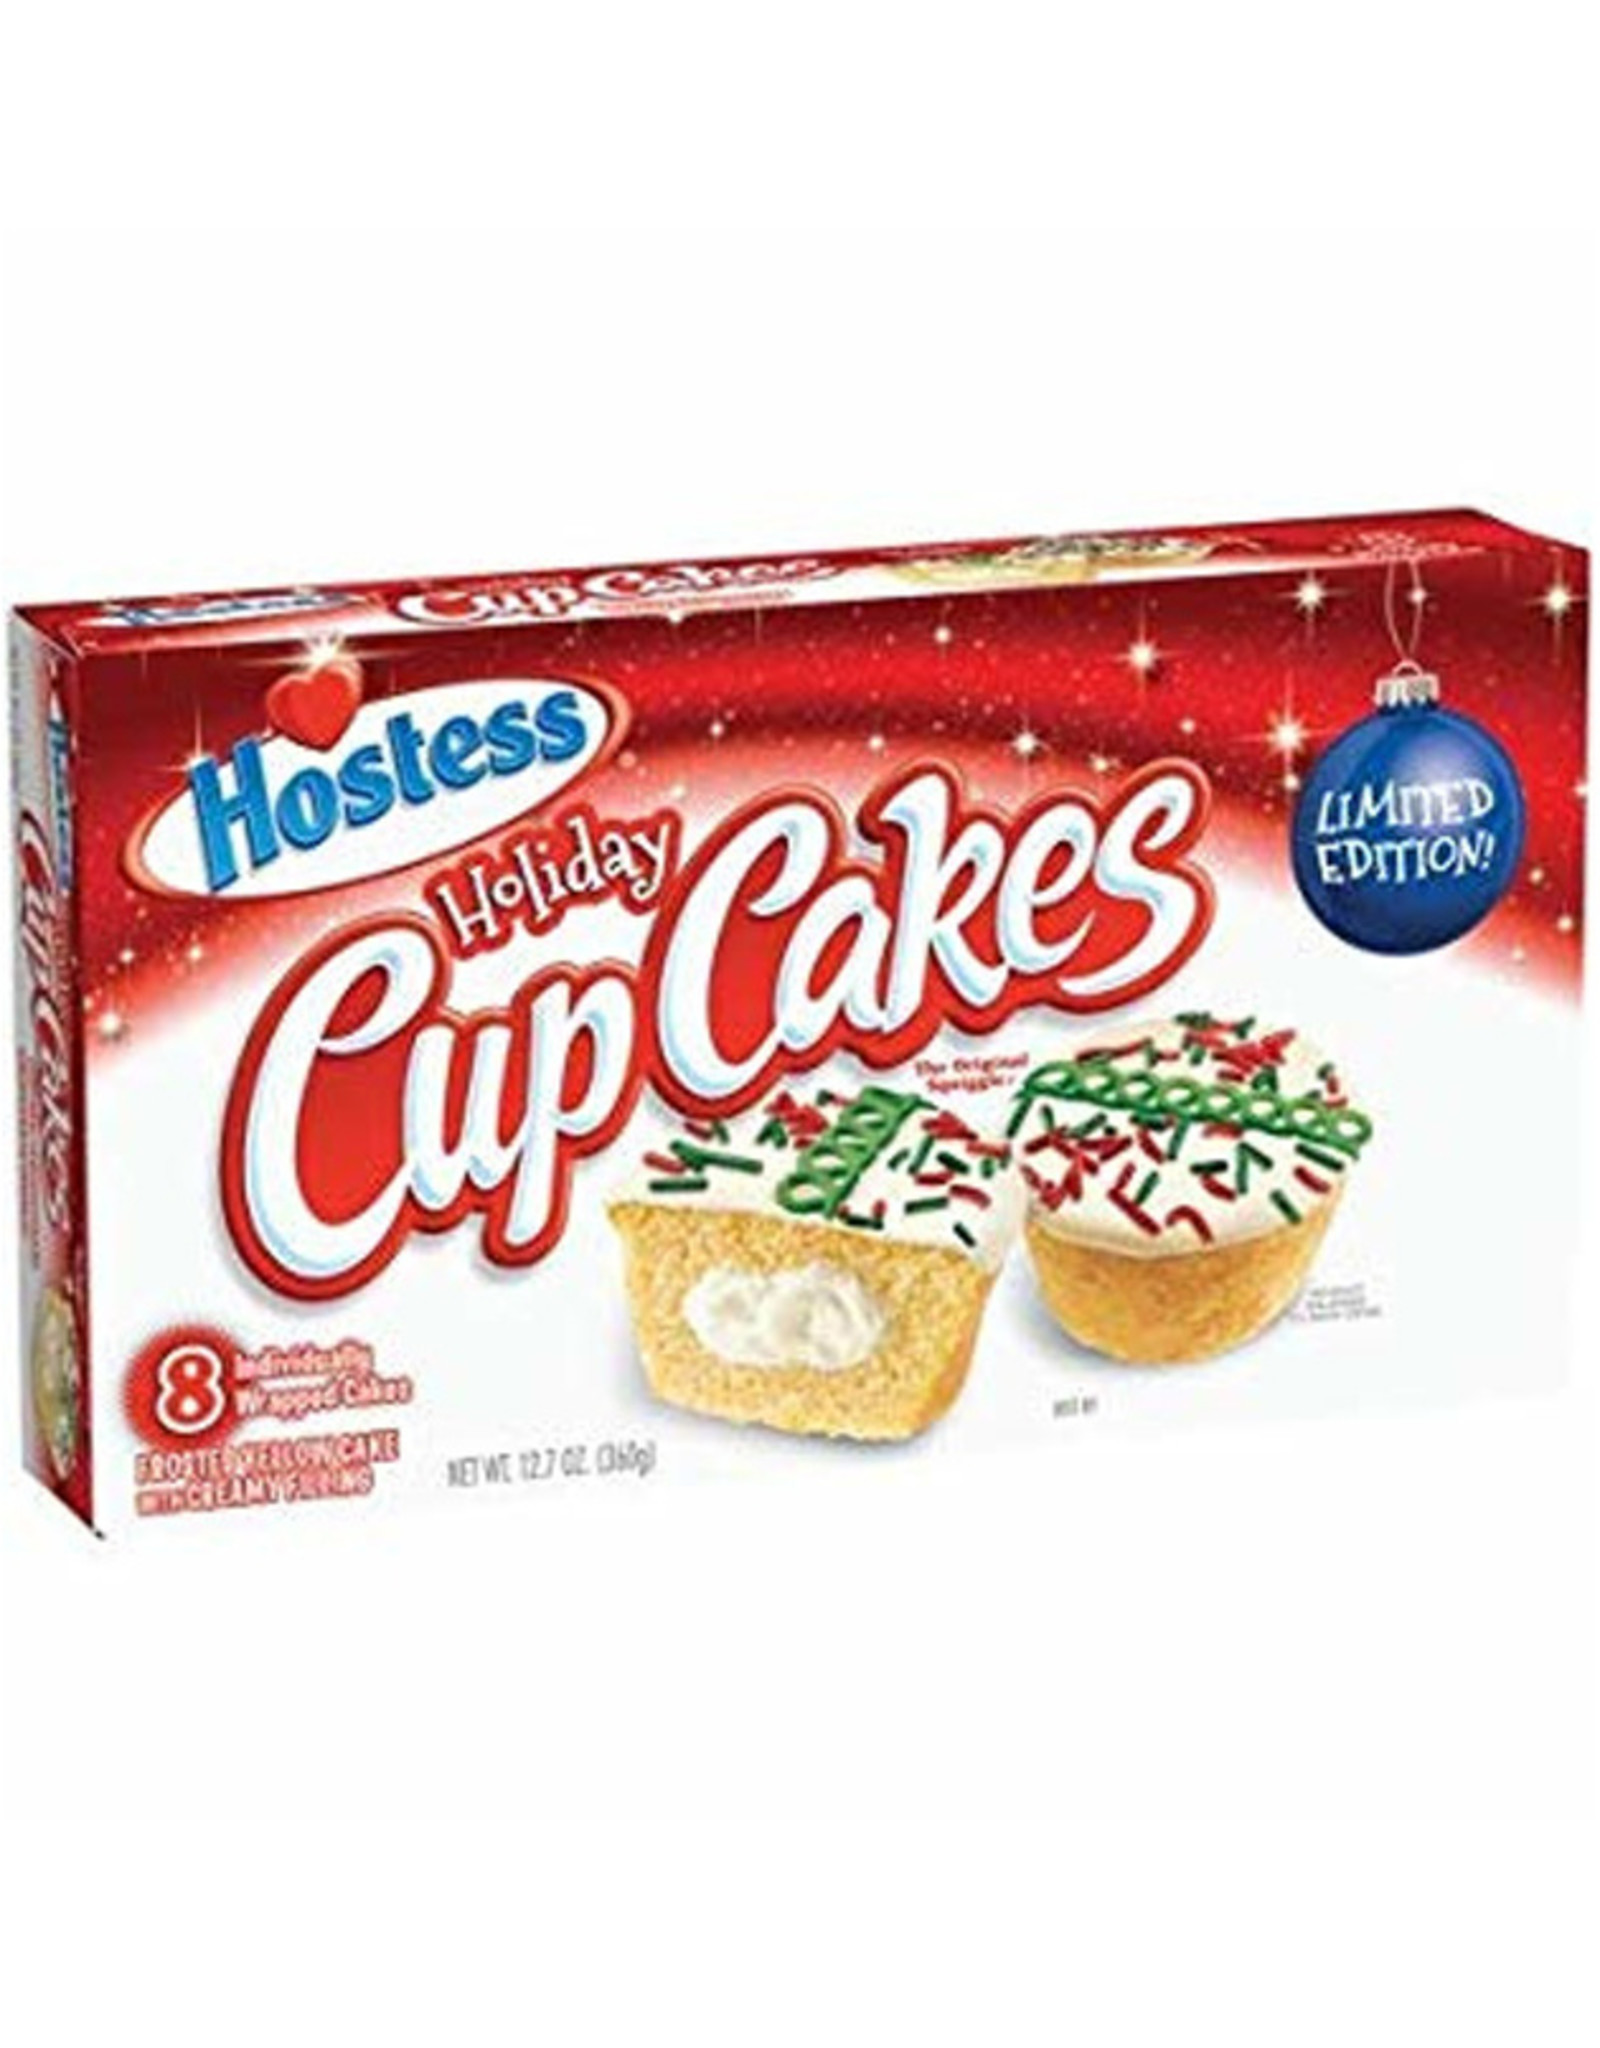 Holiday Cup Cakes - 8 individually wrapped cakes